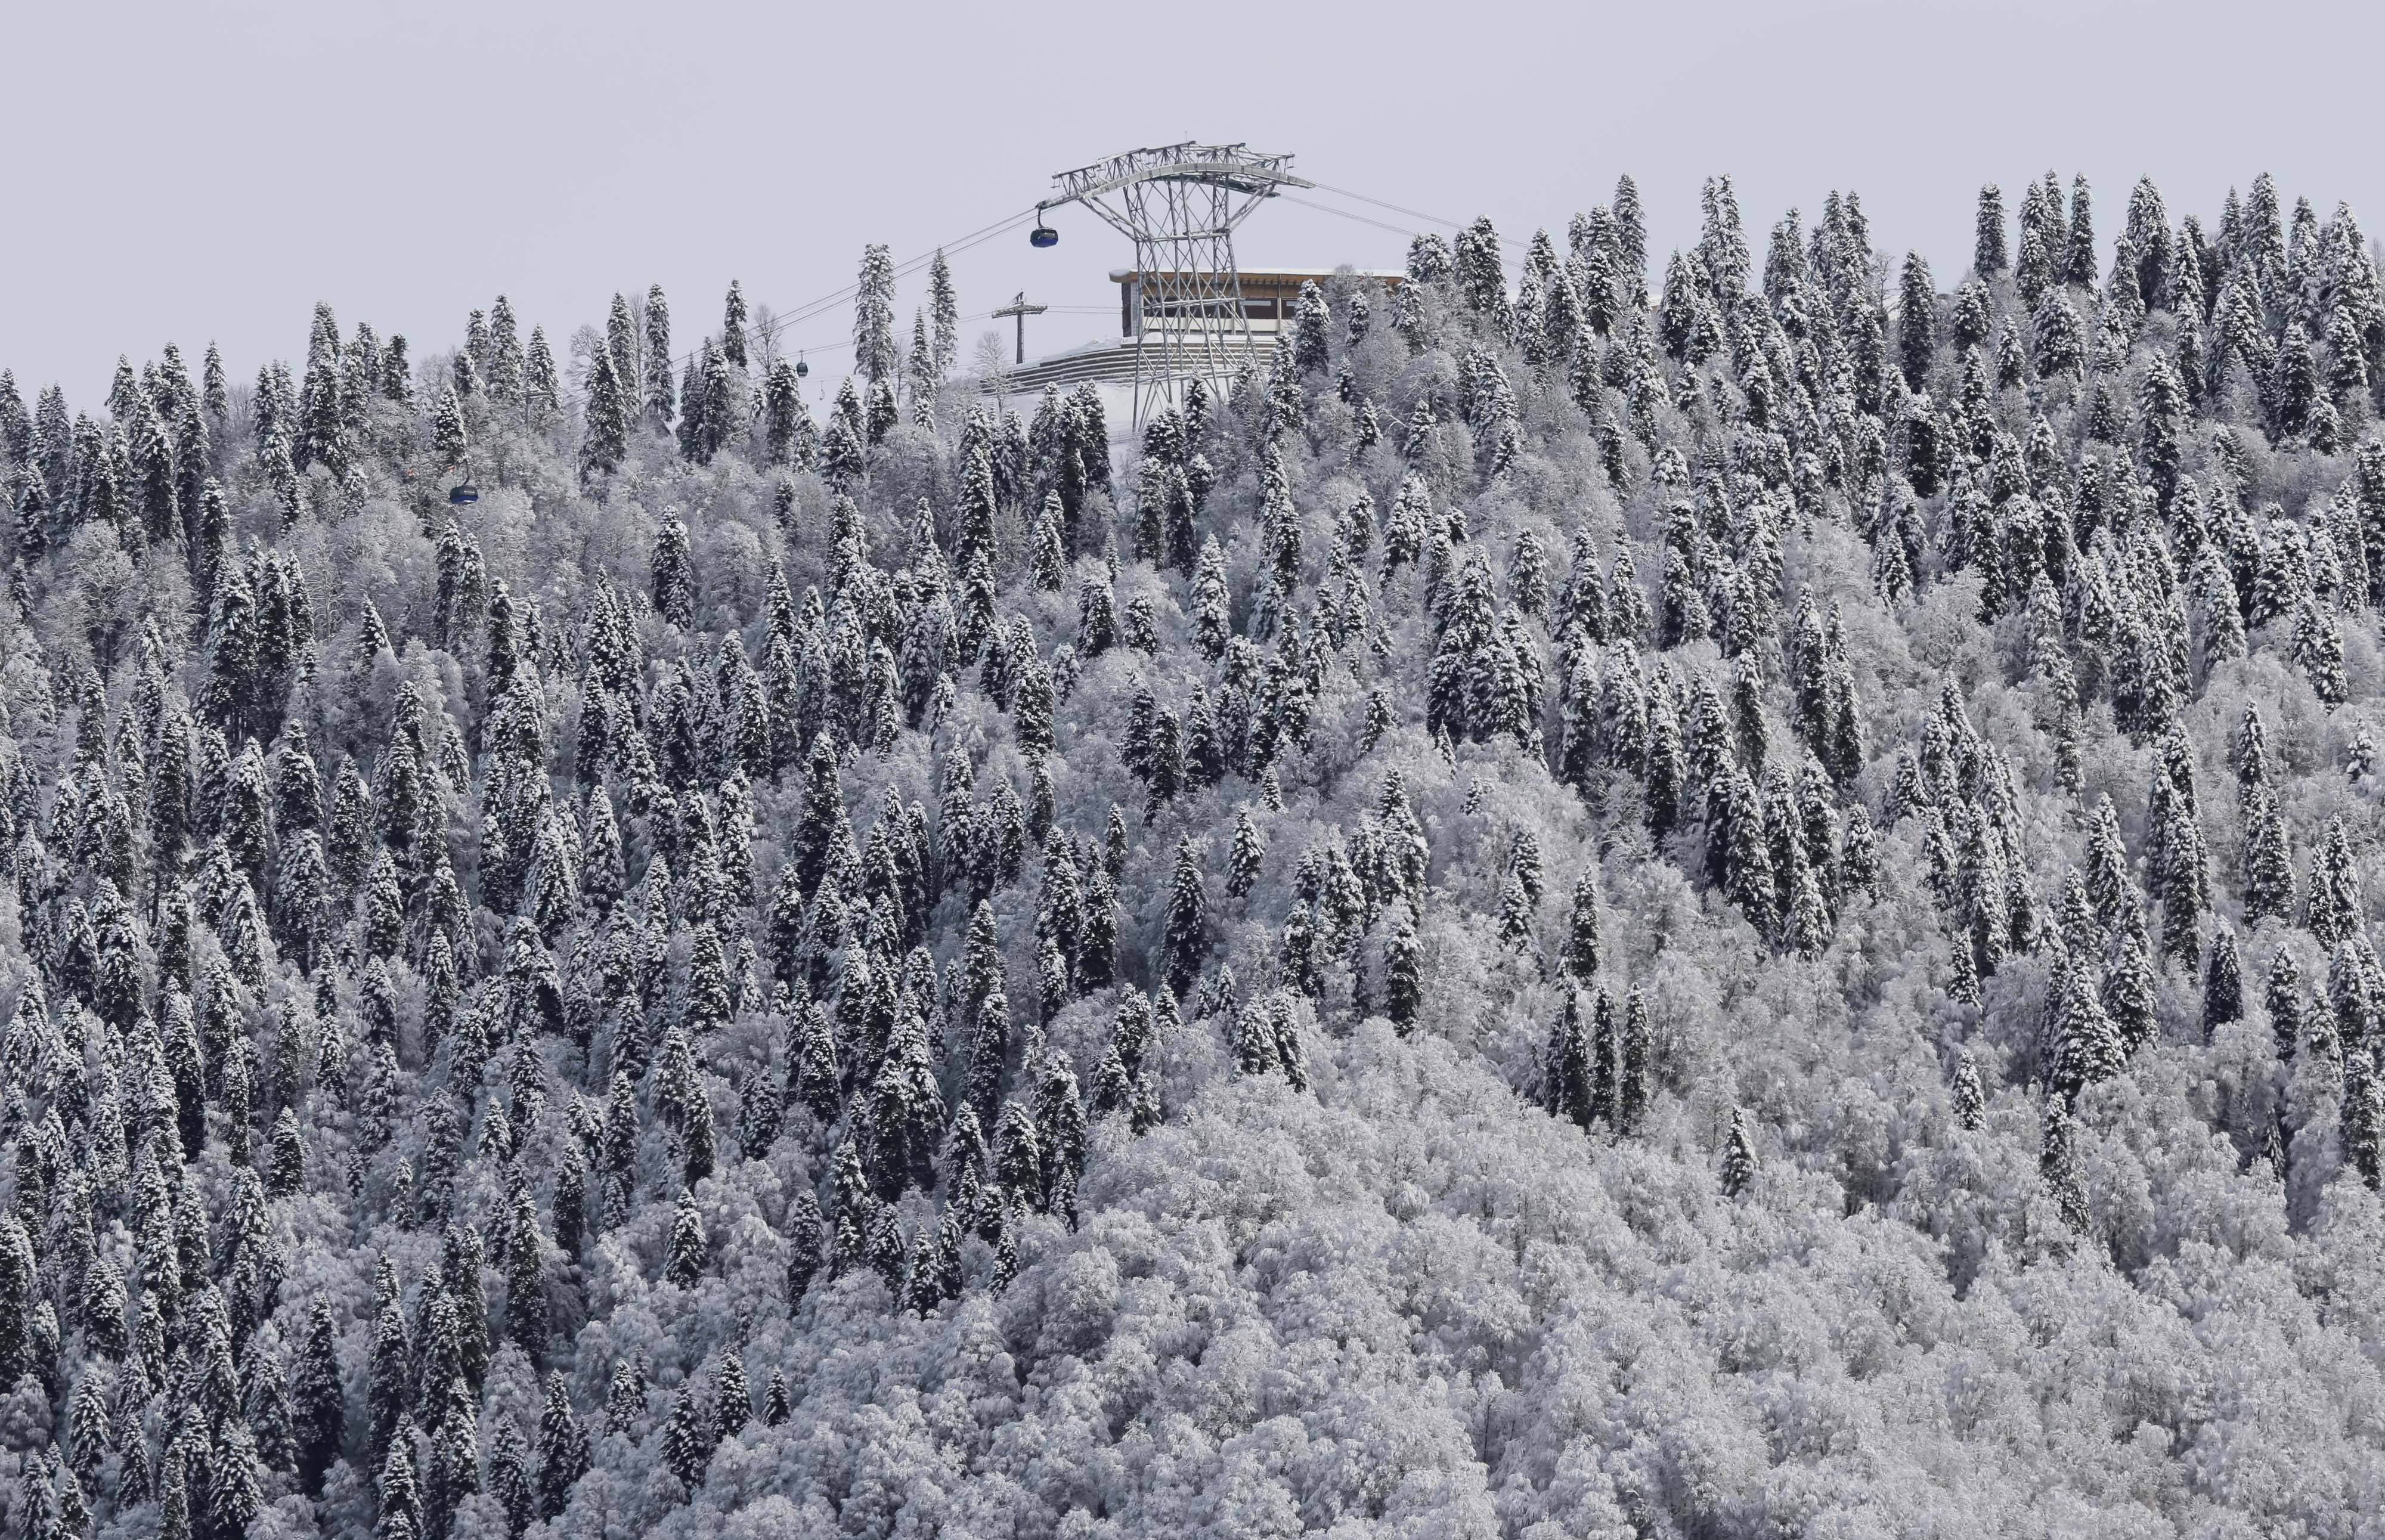 A gondola passes a stand of trees Wednesday after an overnight dusting of snow near the Rosa Khutor Extreme Park at the 2014 Winter Olympics in Krasnaya Polyana, Russia.